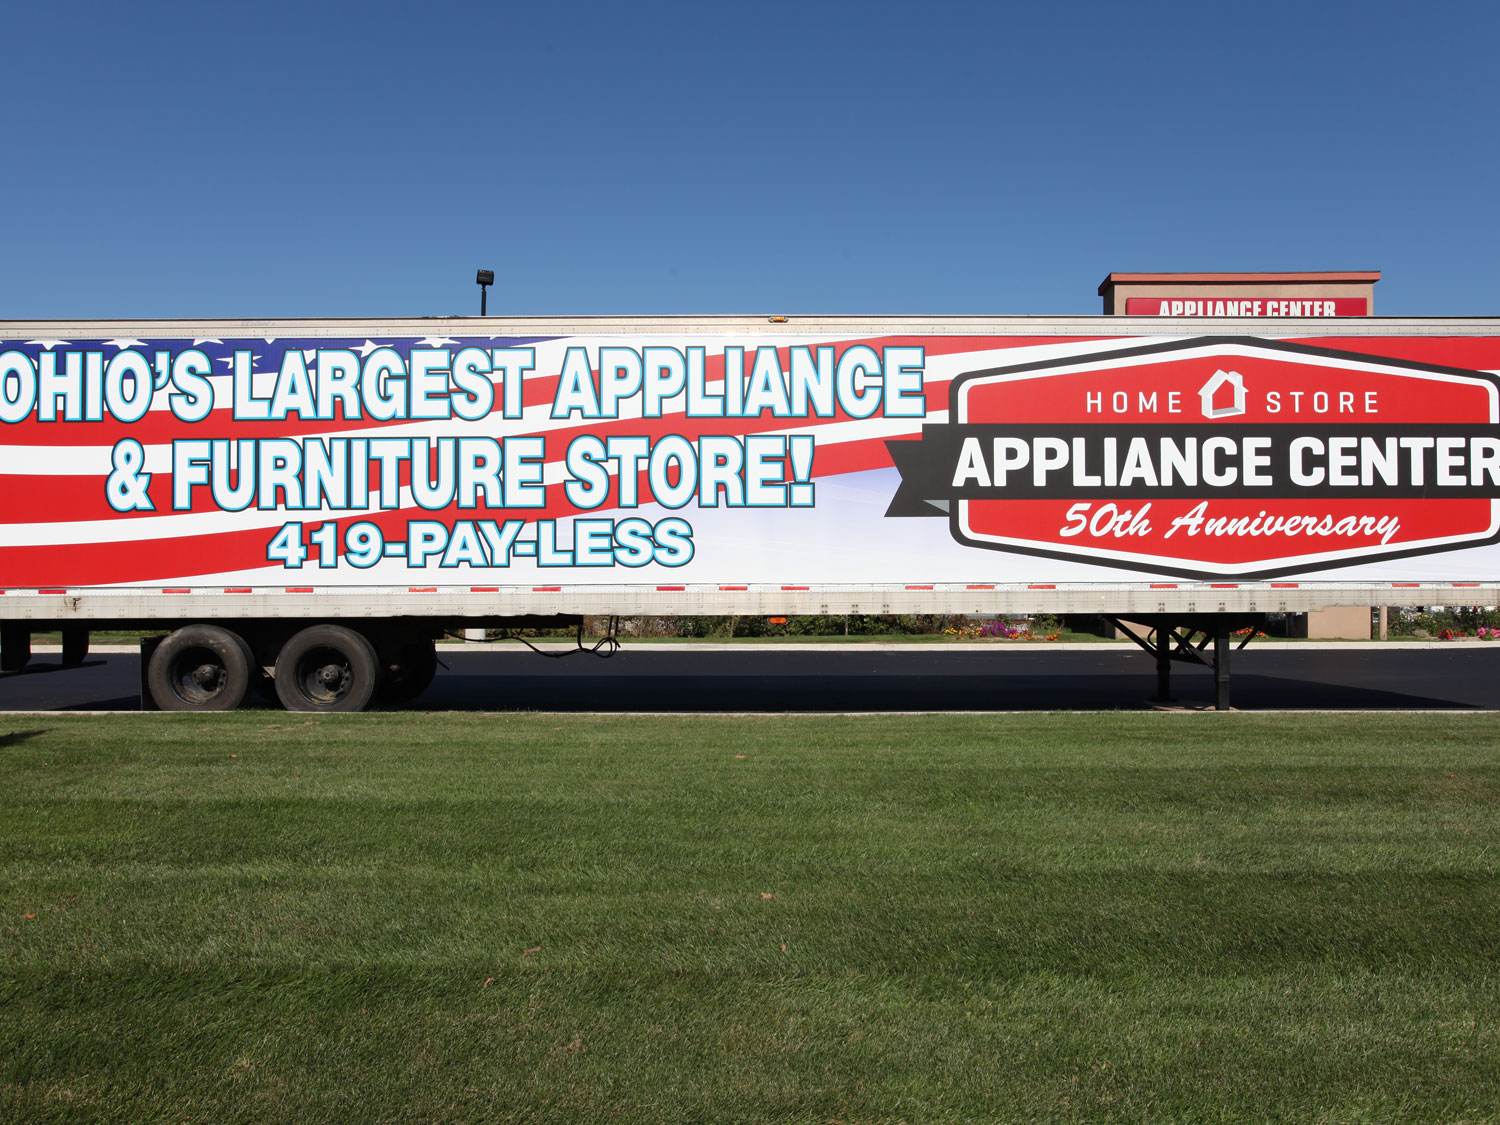 Appliance Center Trailer Wrap Graphics